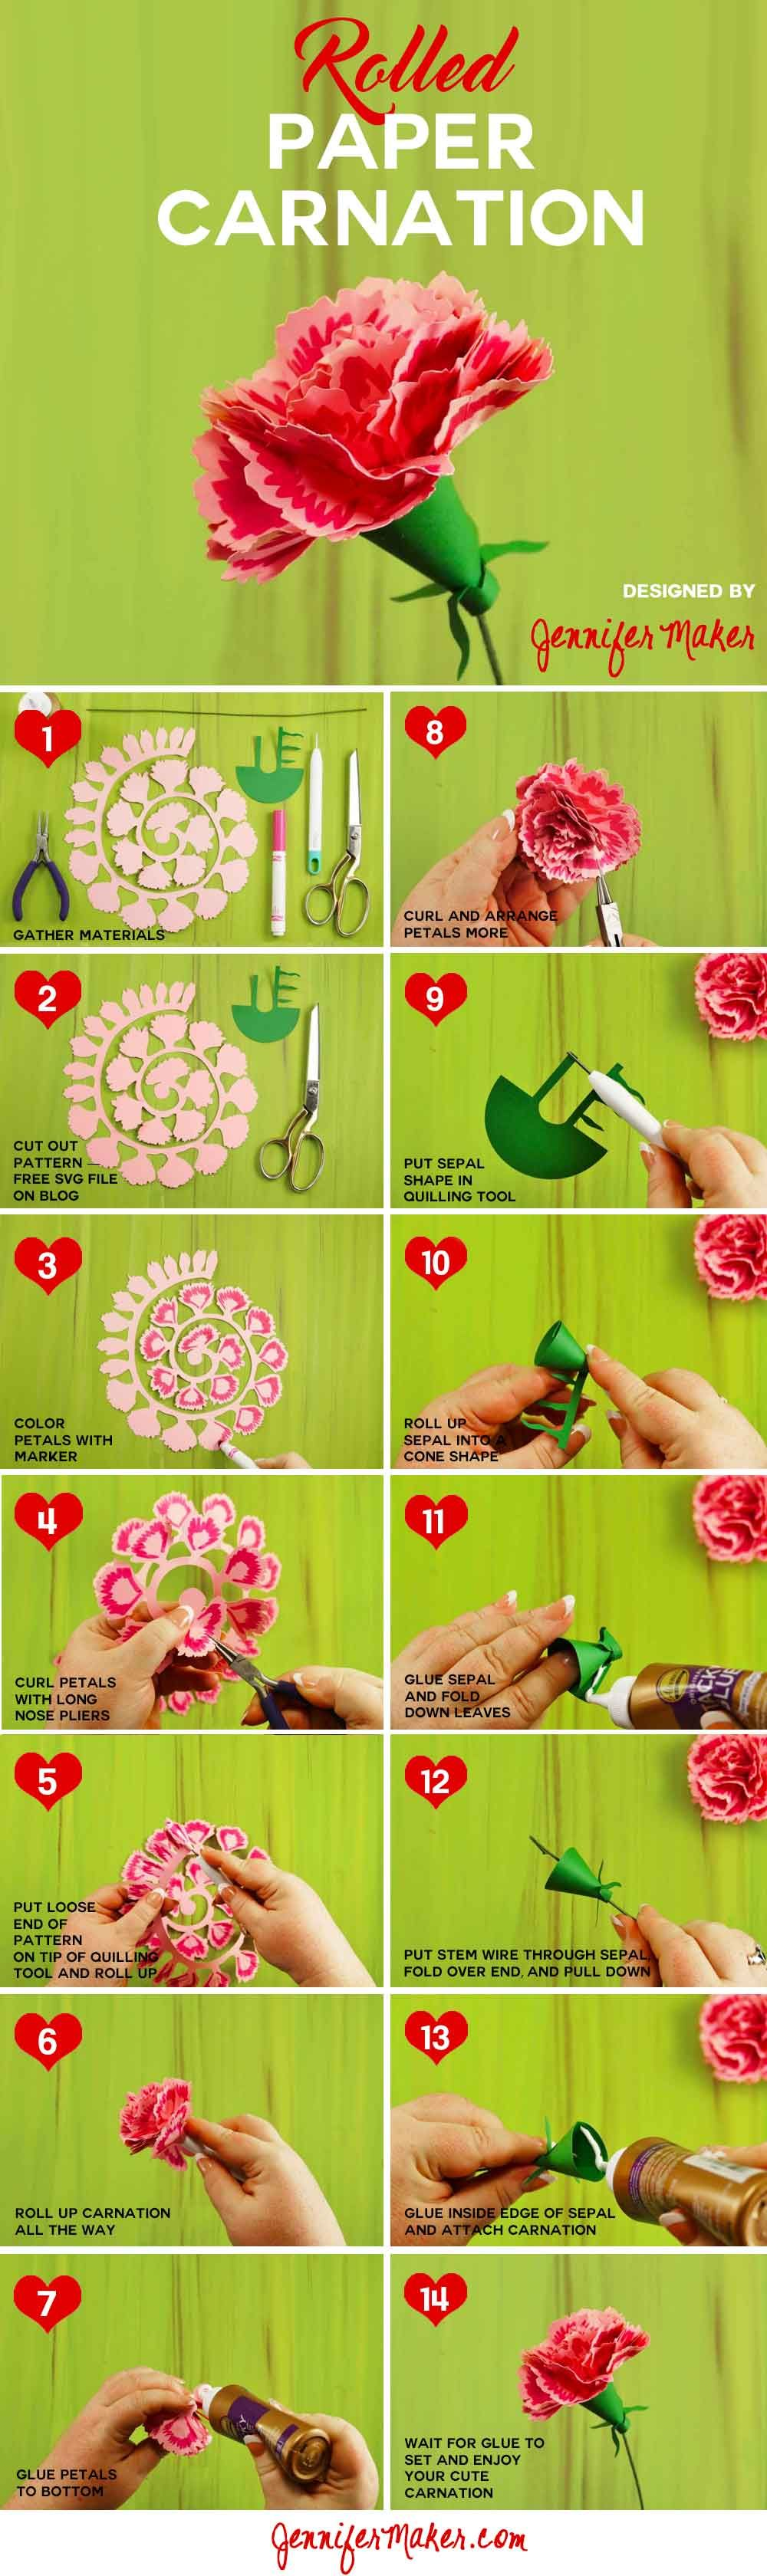 Rolled Paper Carnation Tutorial Free SVG Files Rolled